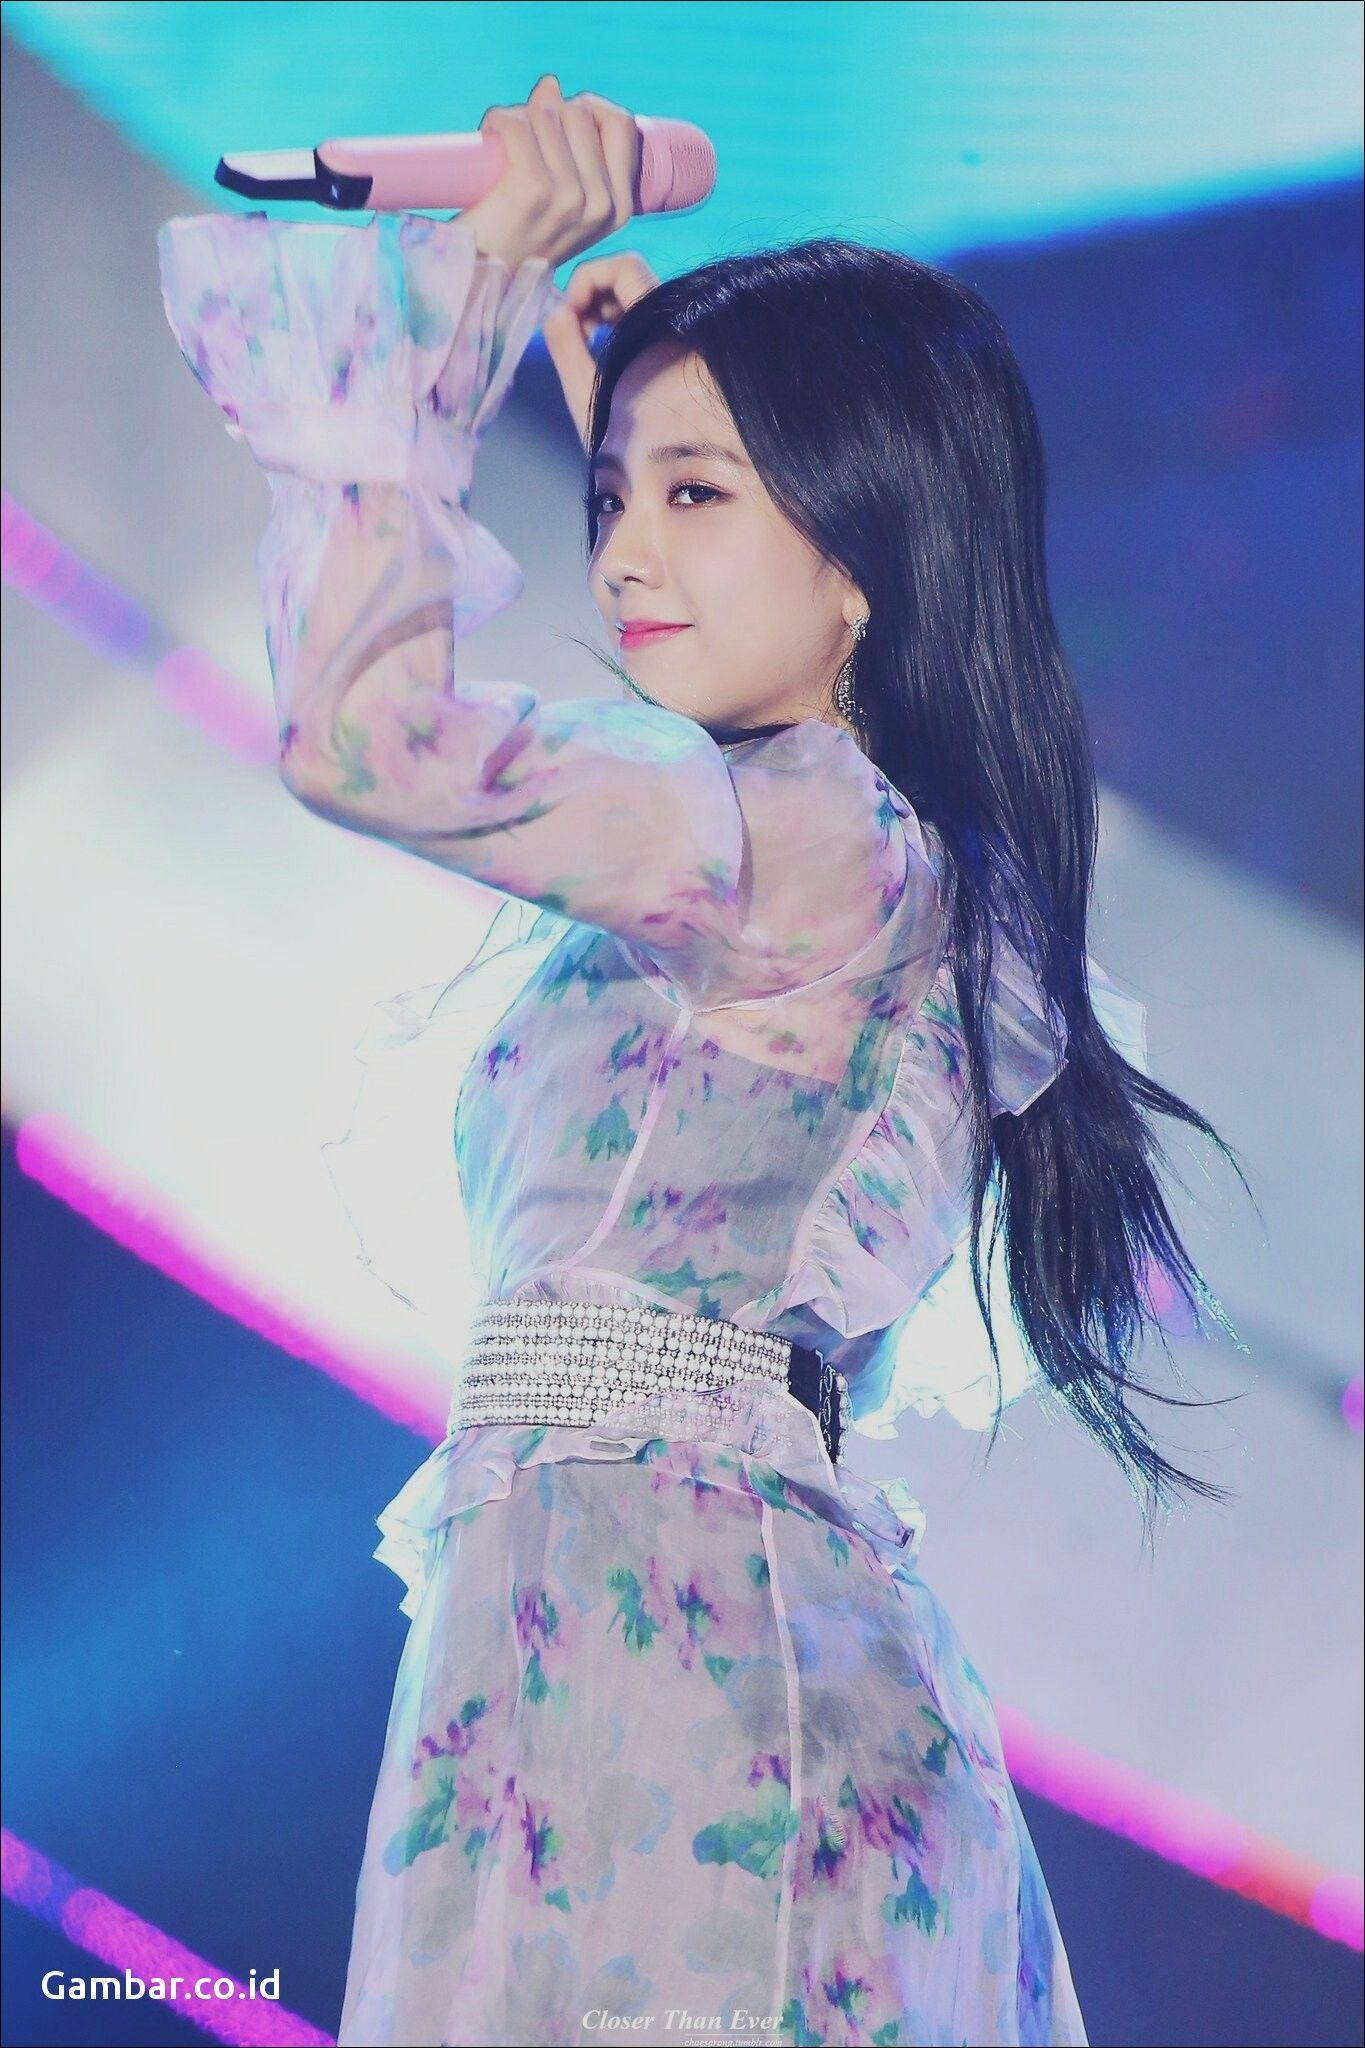 Blackpink Jisoo Wallpaper: Kim Jisoo BLACKPINK Wallpapers